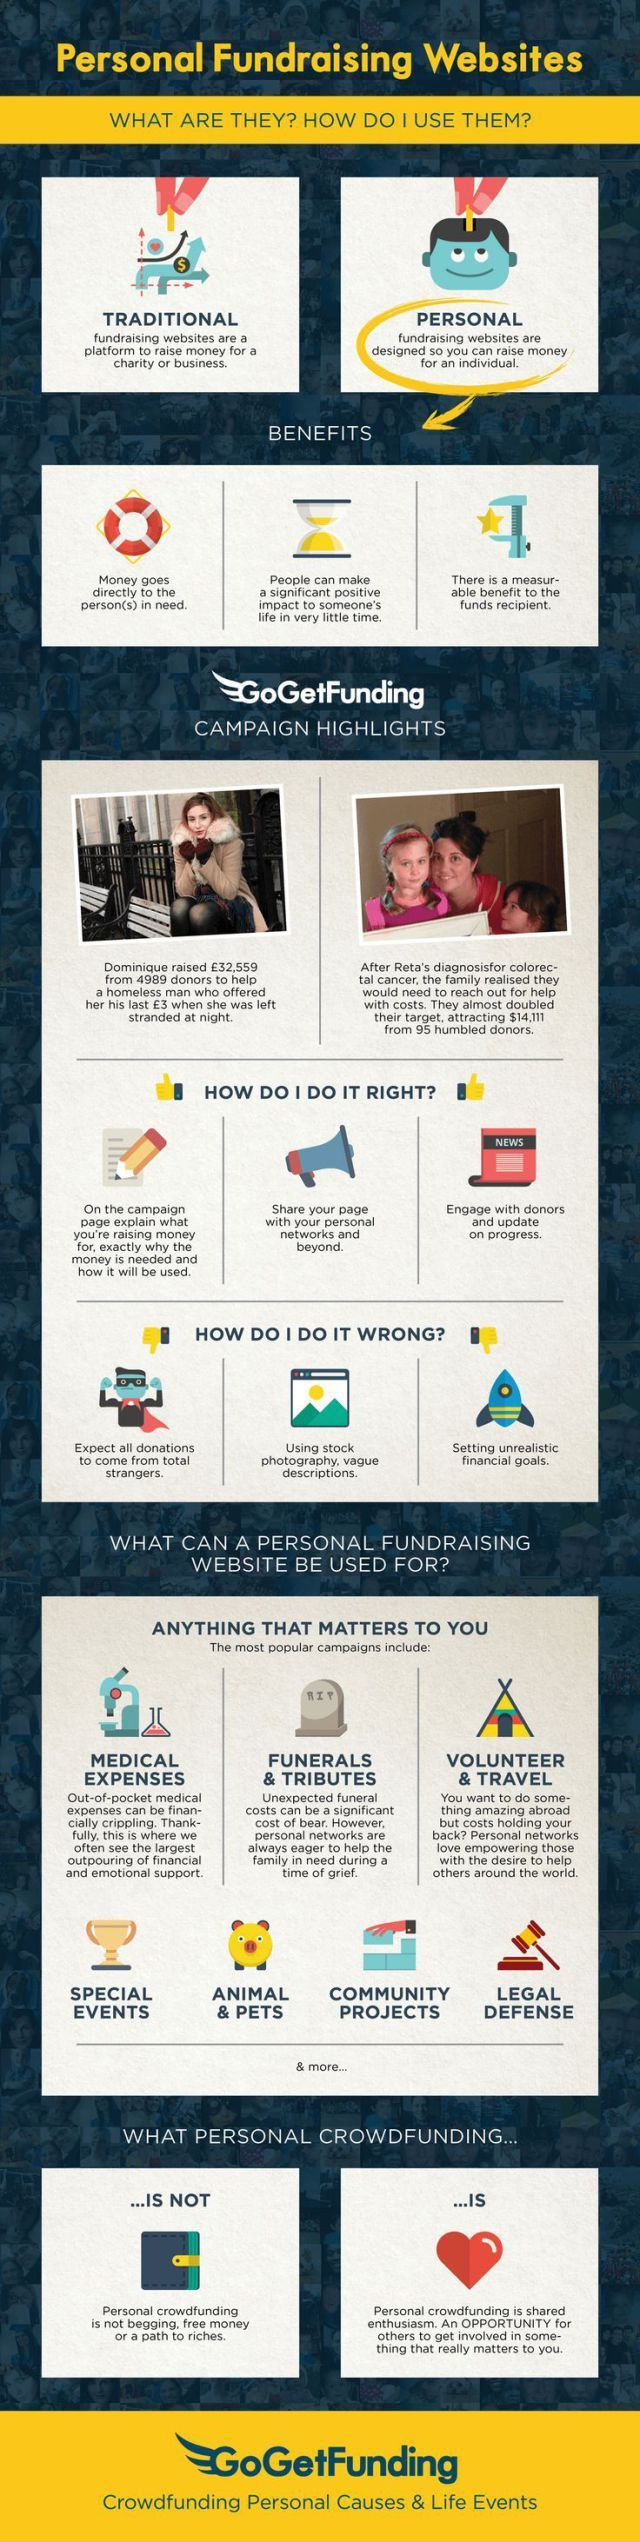 fundraising infographic : fundraising infographic : Personal Fundraising Websites  How to Use Them? [INFOG